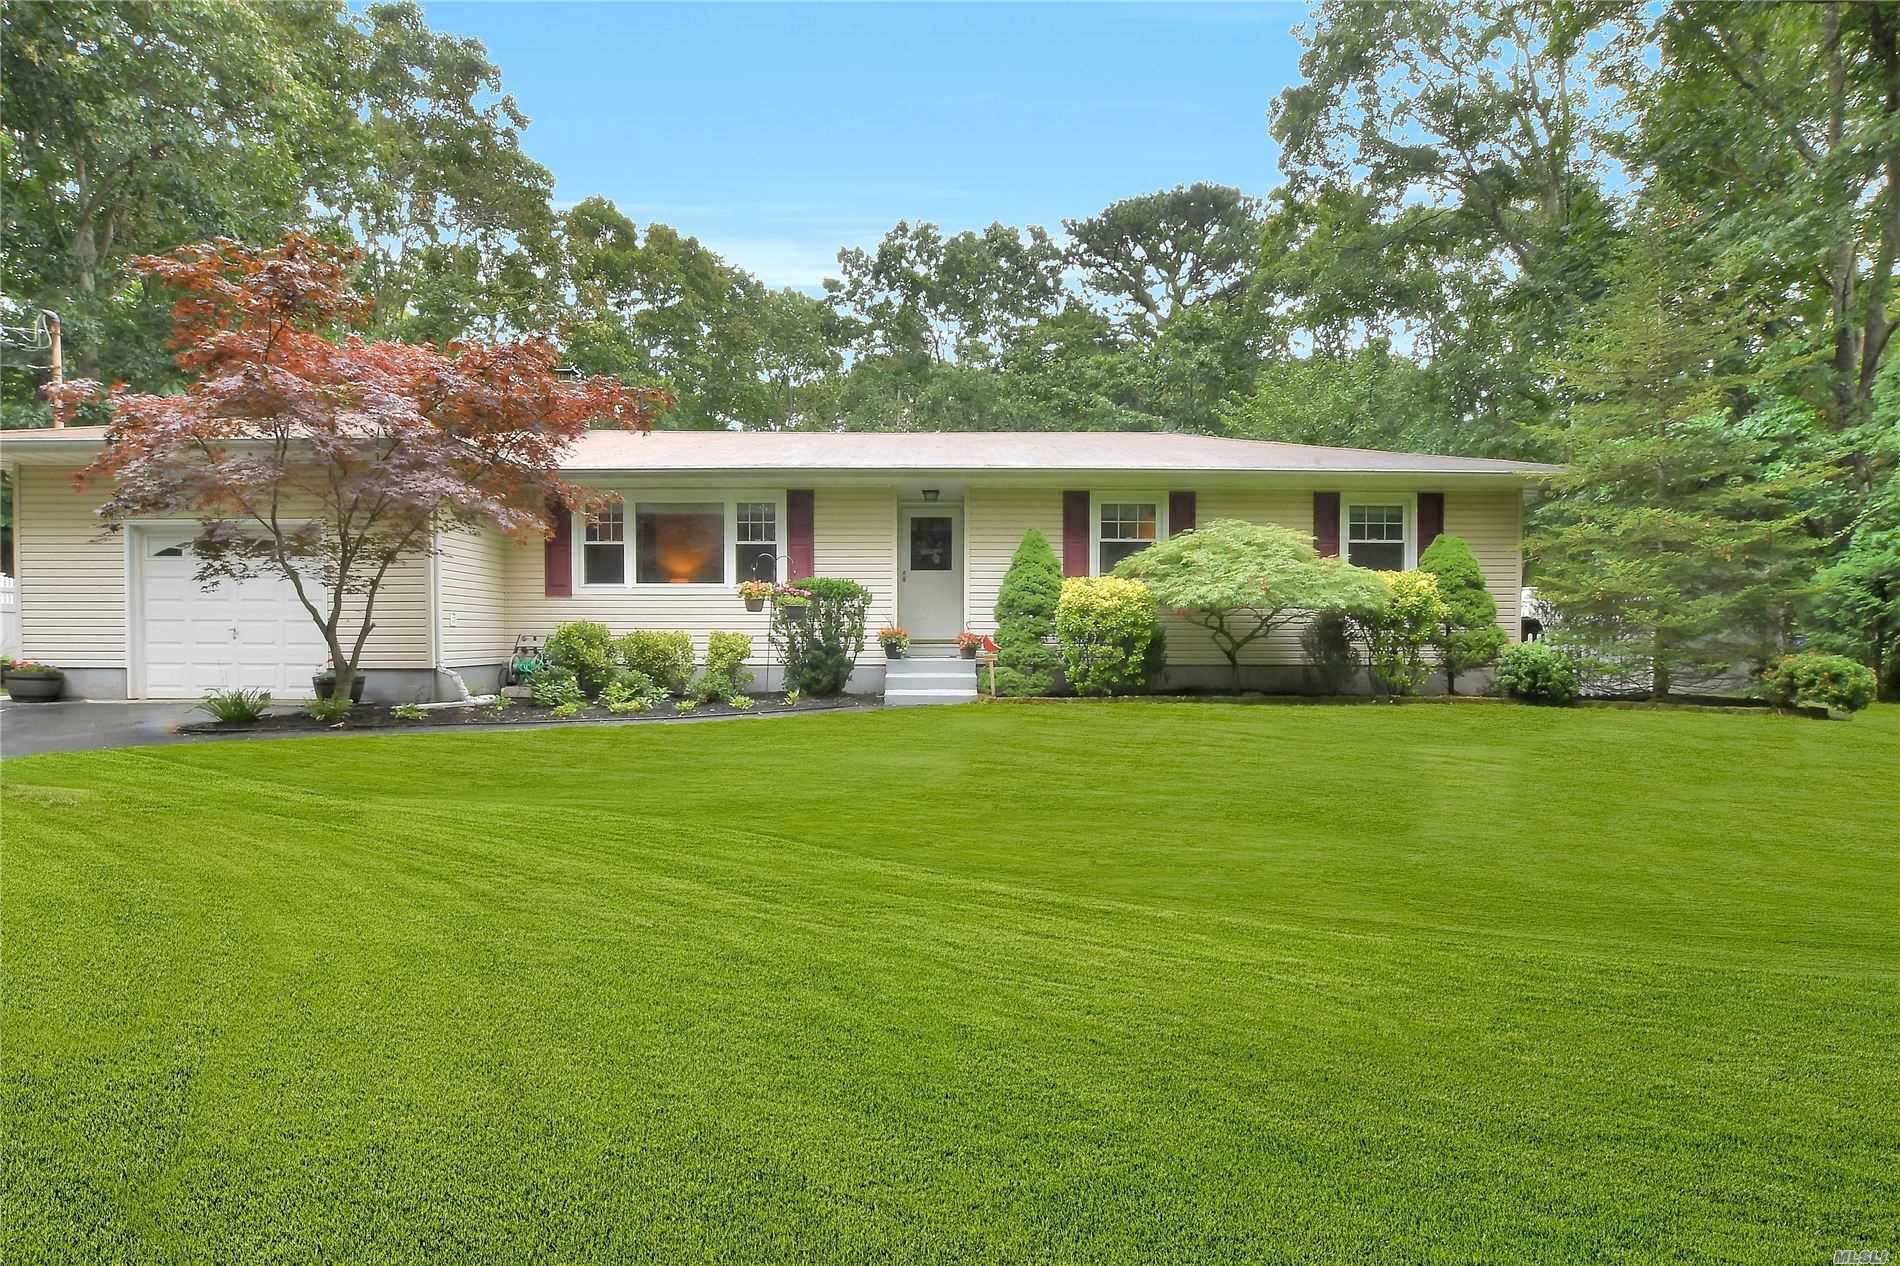 125 Silas Carter Road, Manorville, NY 11949 - MLS#: 3243146